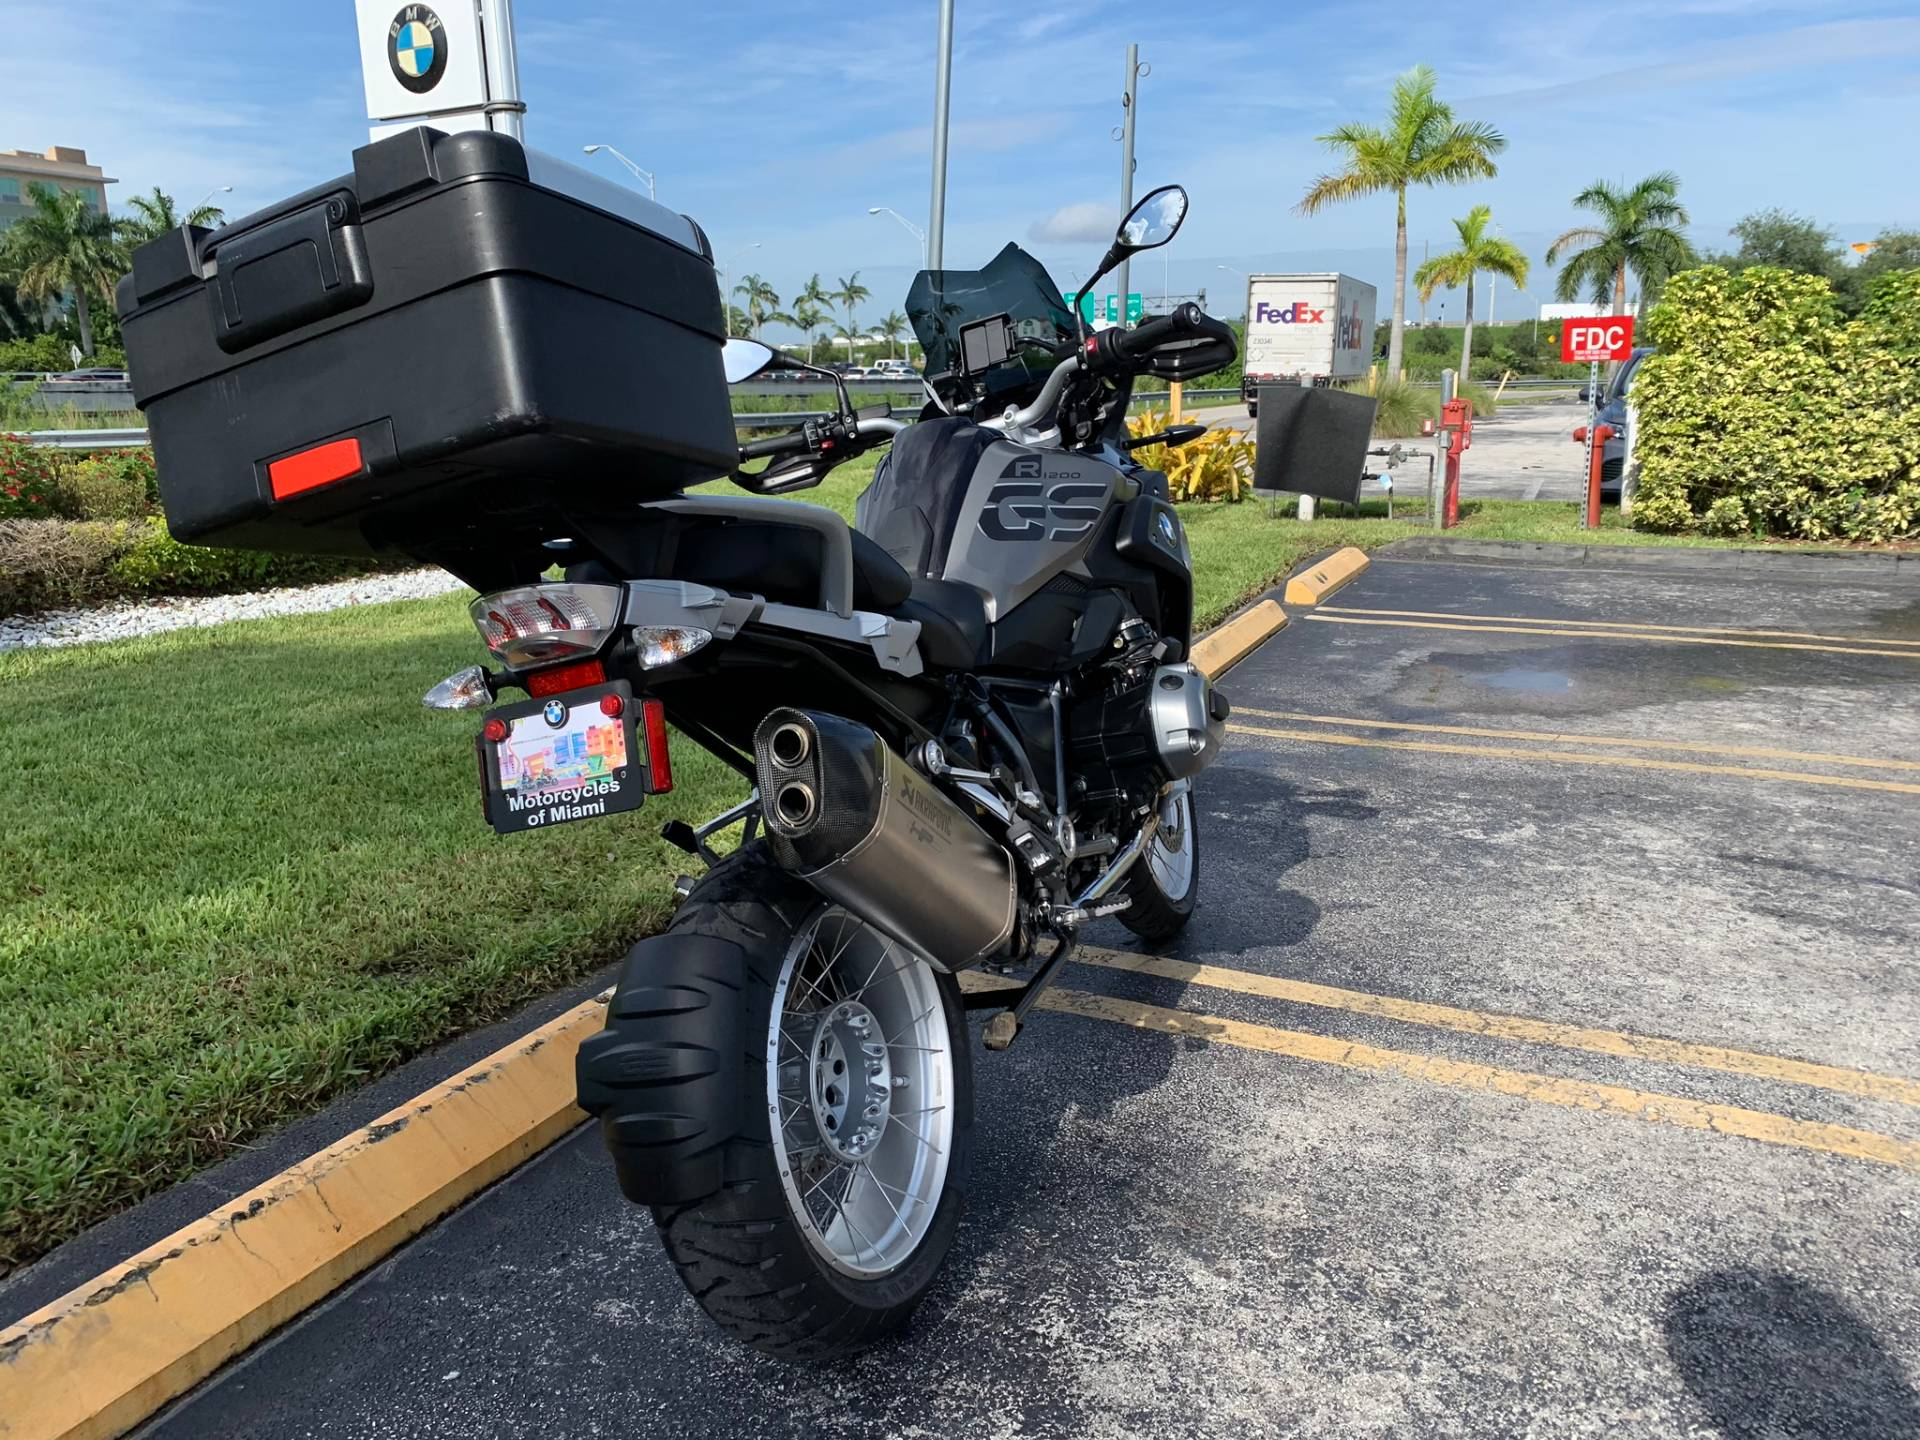 Used 2018 BMW R 1200 GS for sale, BMW R 1200GS for sale, BMW Motorcycle R1200GS, used BMW 1200GS, DUAL, GSA, BMW. BMW Motorcycles of Miami, Motorcycles of Miami, Motorcycles Miami, New Motorcycles, Used Motorcycles, pre-owned. #BMWMotorcyclesOfMiami #MotorcyclesOfMiami. - Photo 14